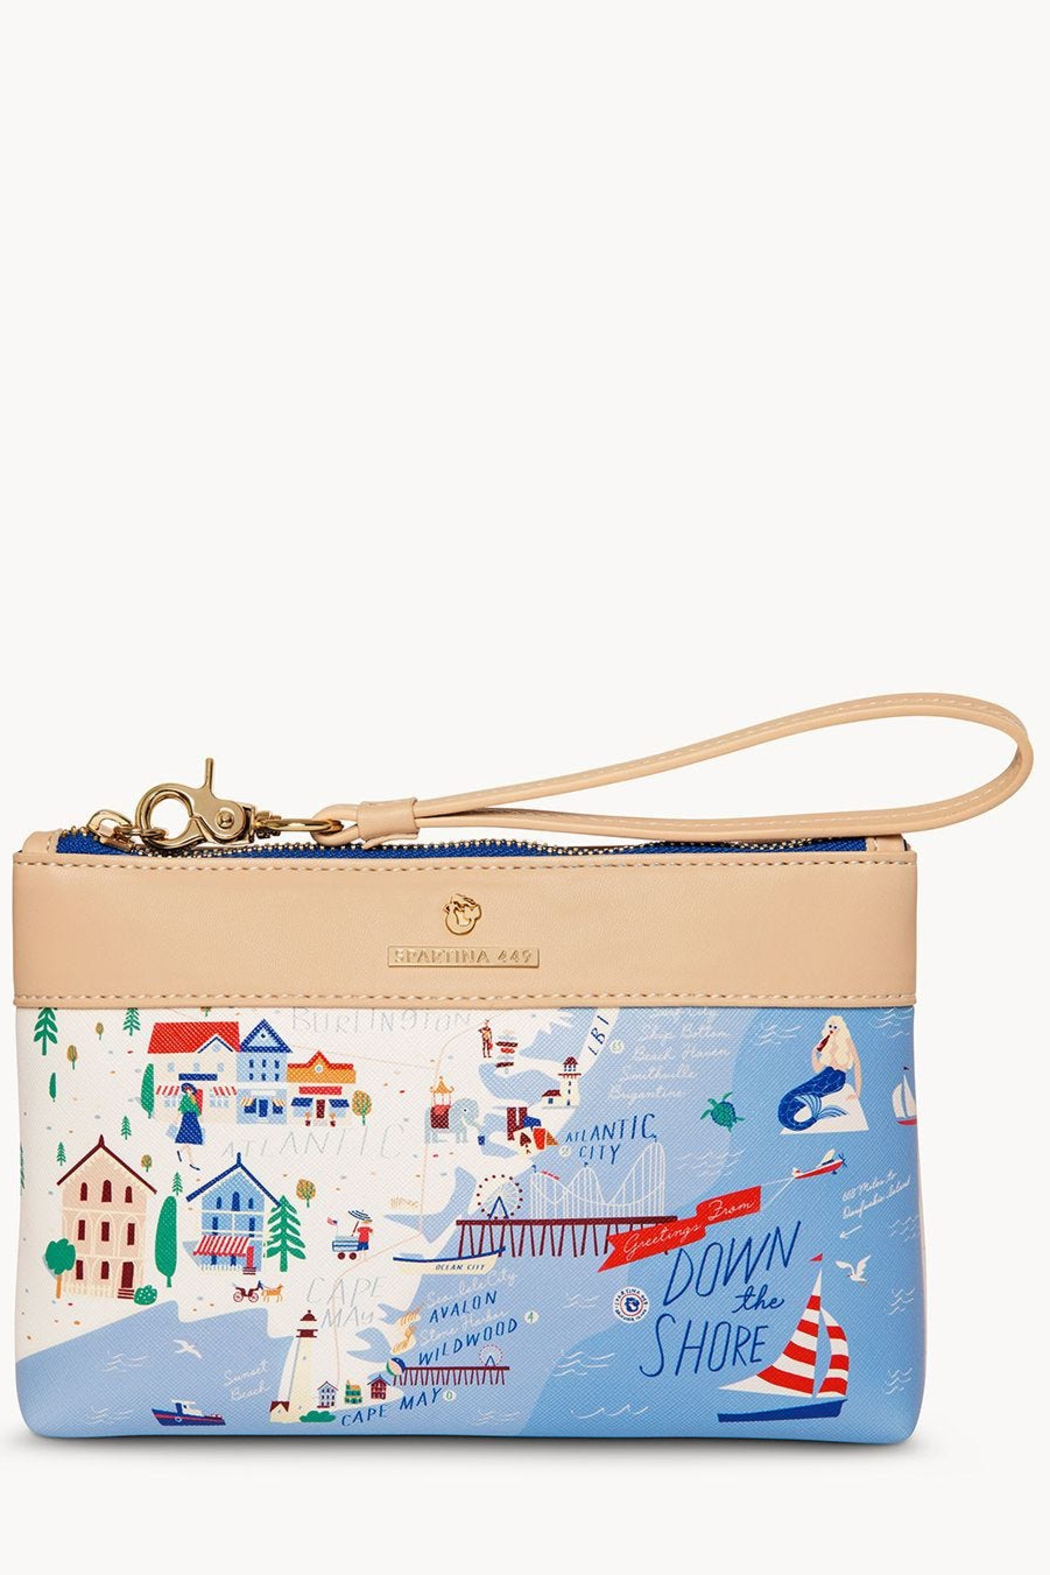 Spartina Down The Shore Scout Wristlet - Front Cropped Image